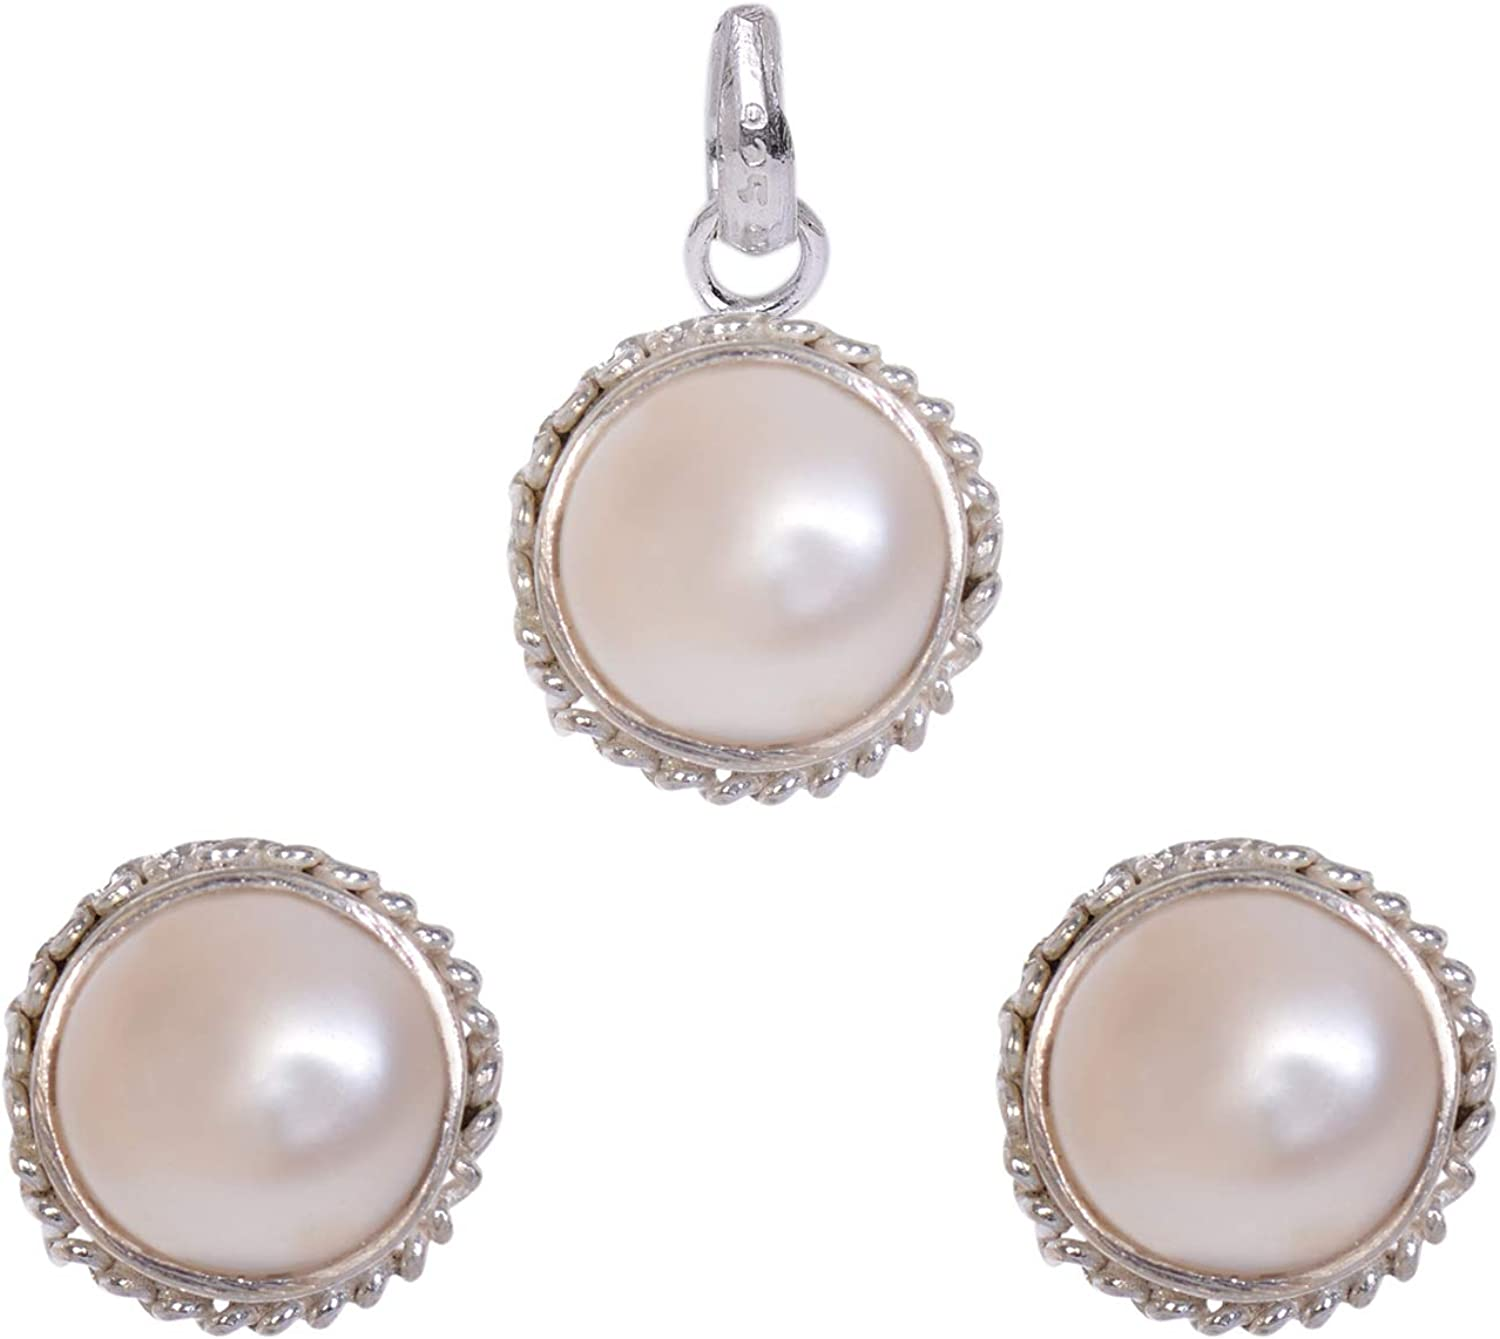 Silverwala 925-92.5 Sterling Silver Pearl お求めやすく価格改定 新作 Set Stone Pendant For